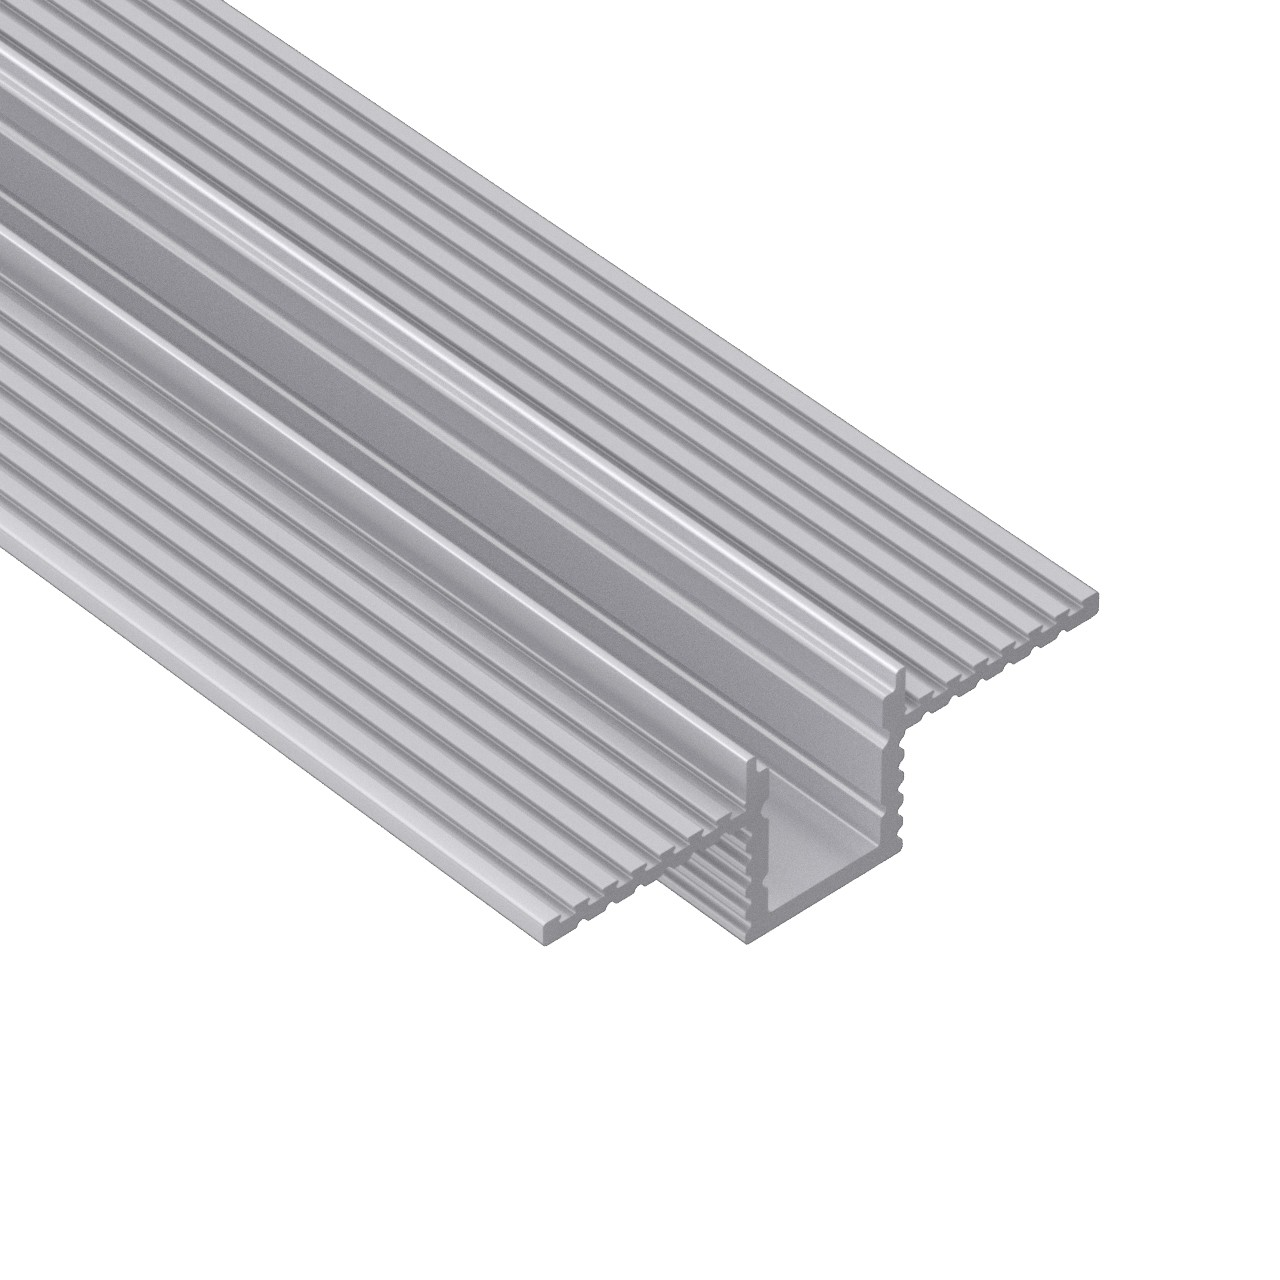 CT9 trimless extrusiones de aluminio para empotrar en paredes y techos de cartón-yeso 28x9mm